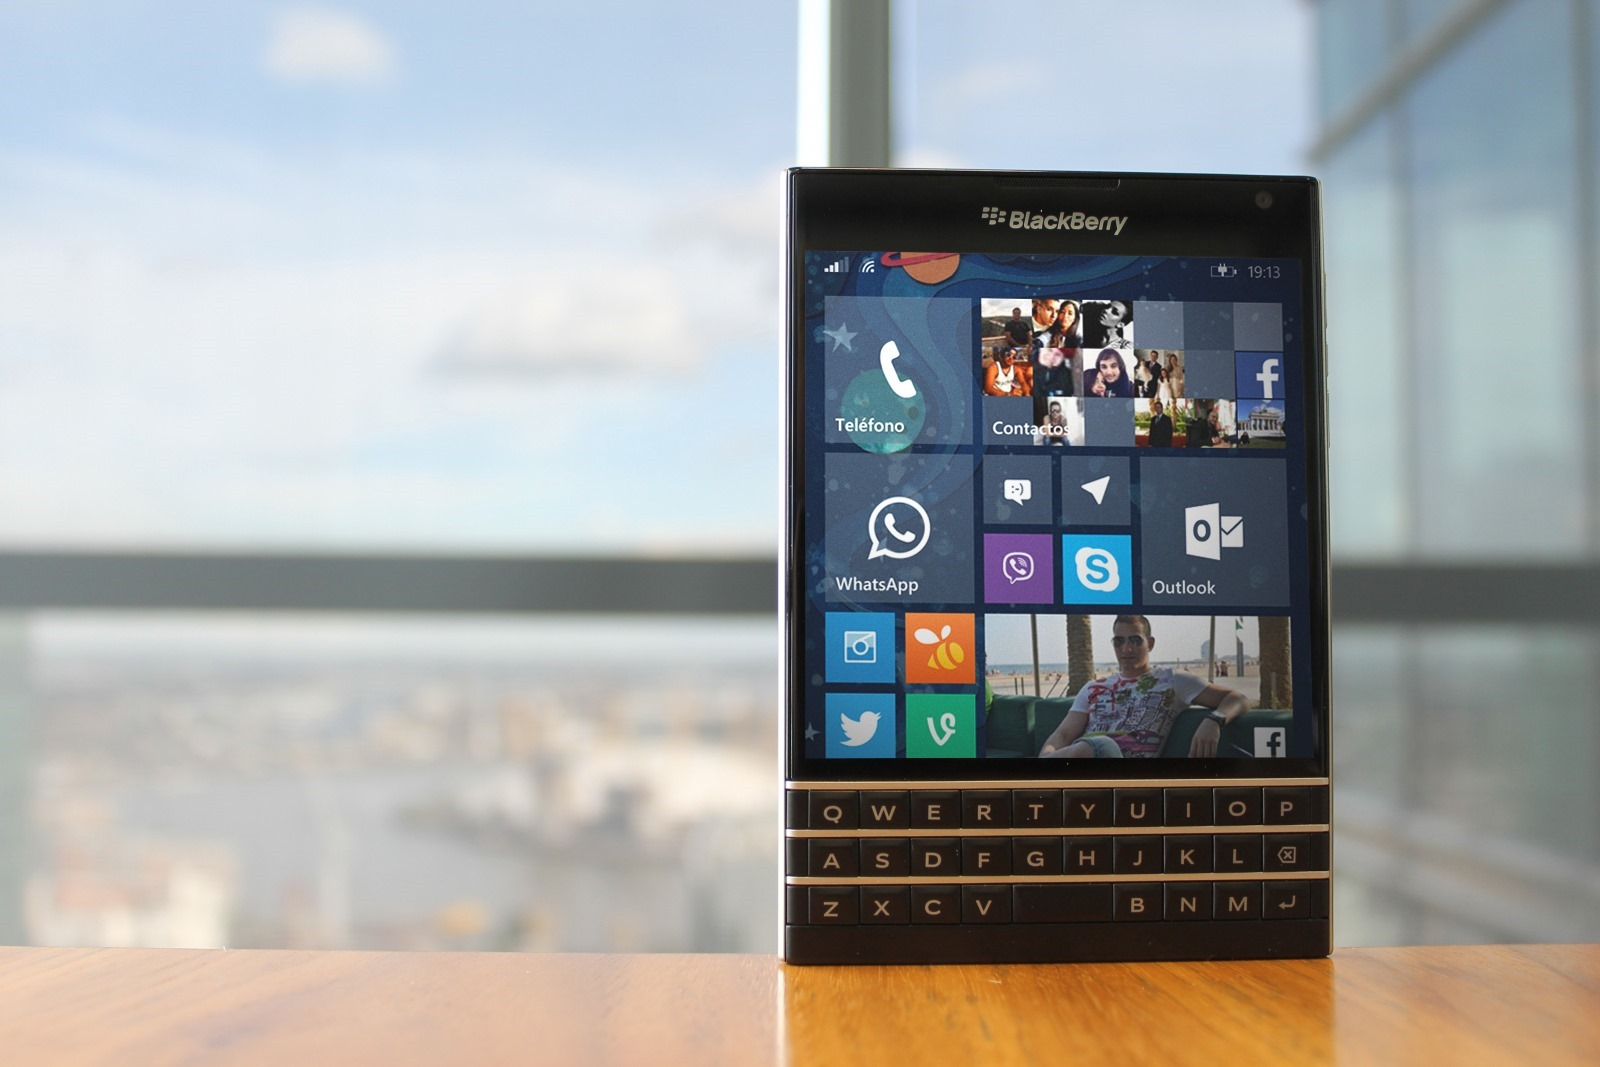 Blackberry Passport Windows 10 Mobile